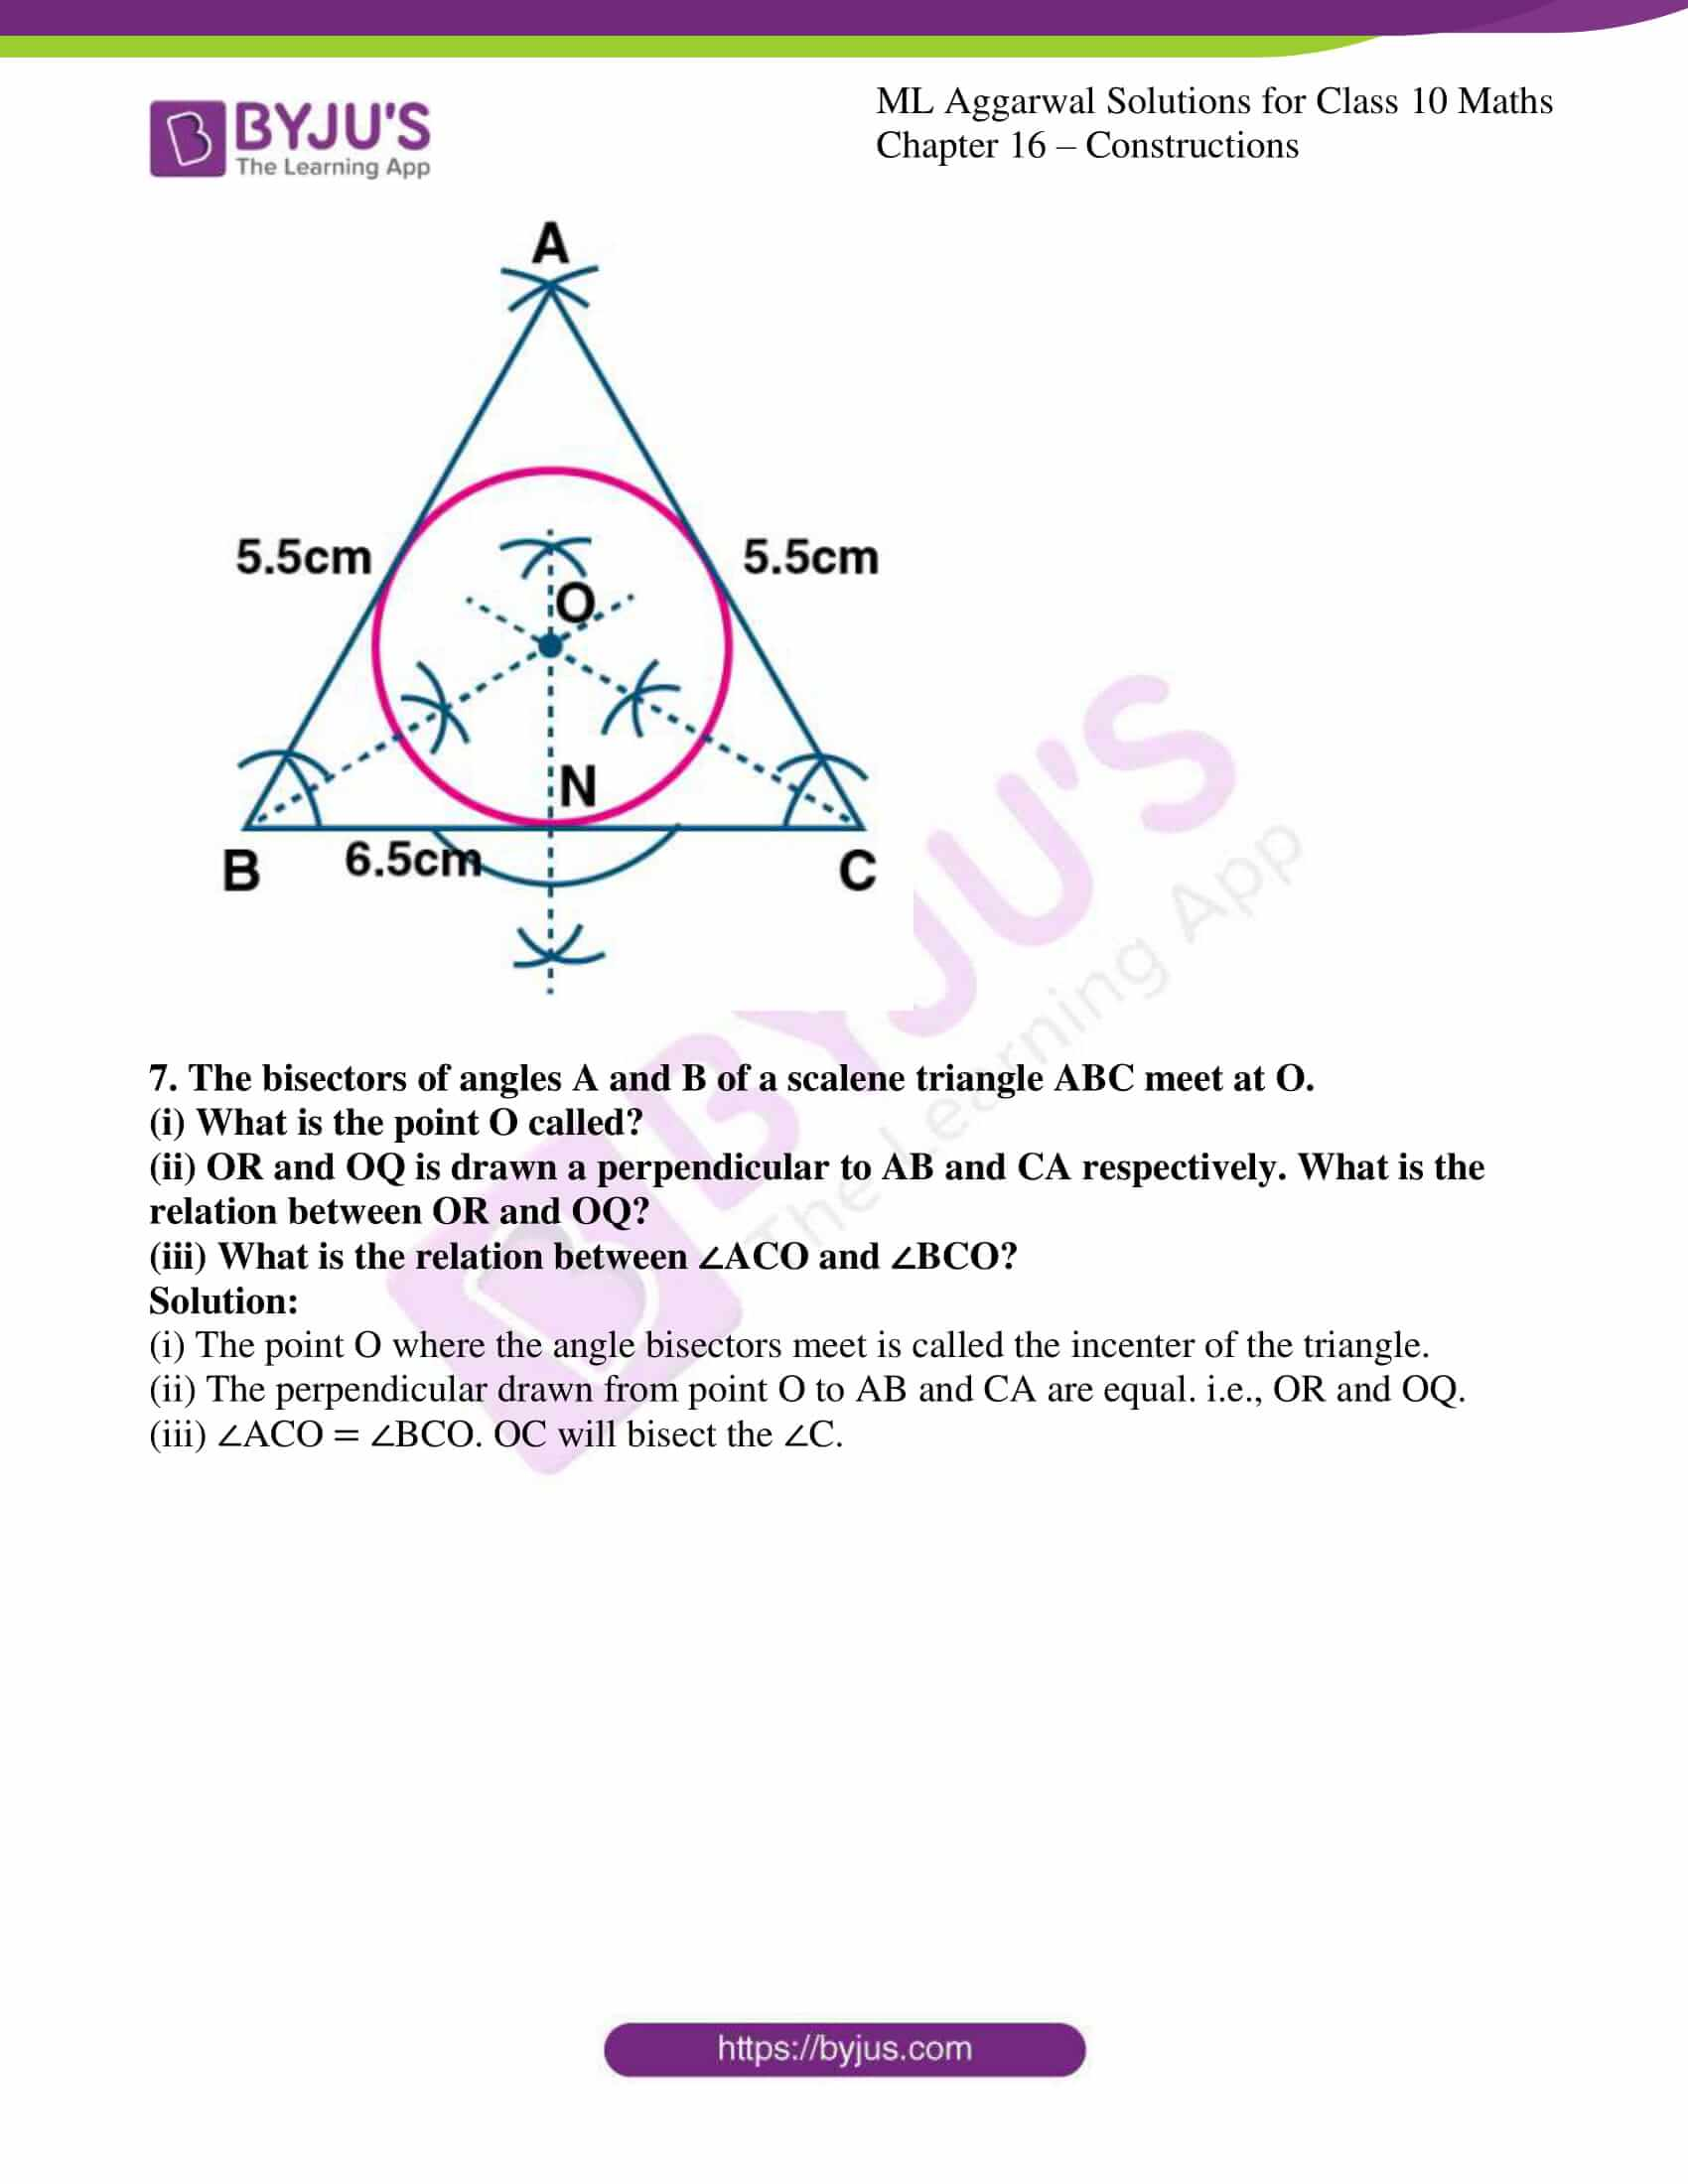 ml aggarwal solutions class 10 maths chapter 16 11